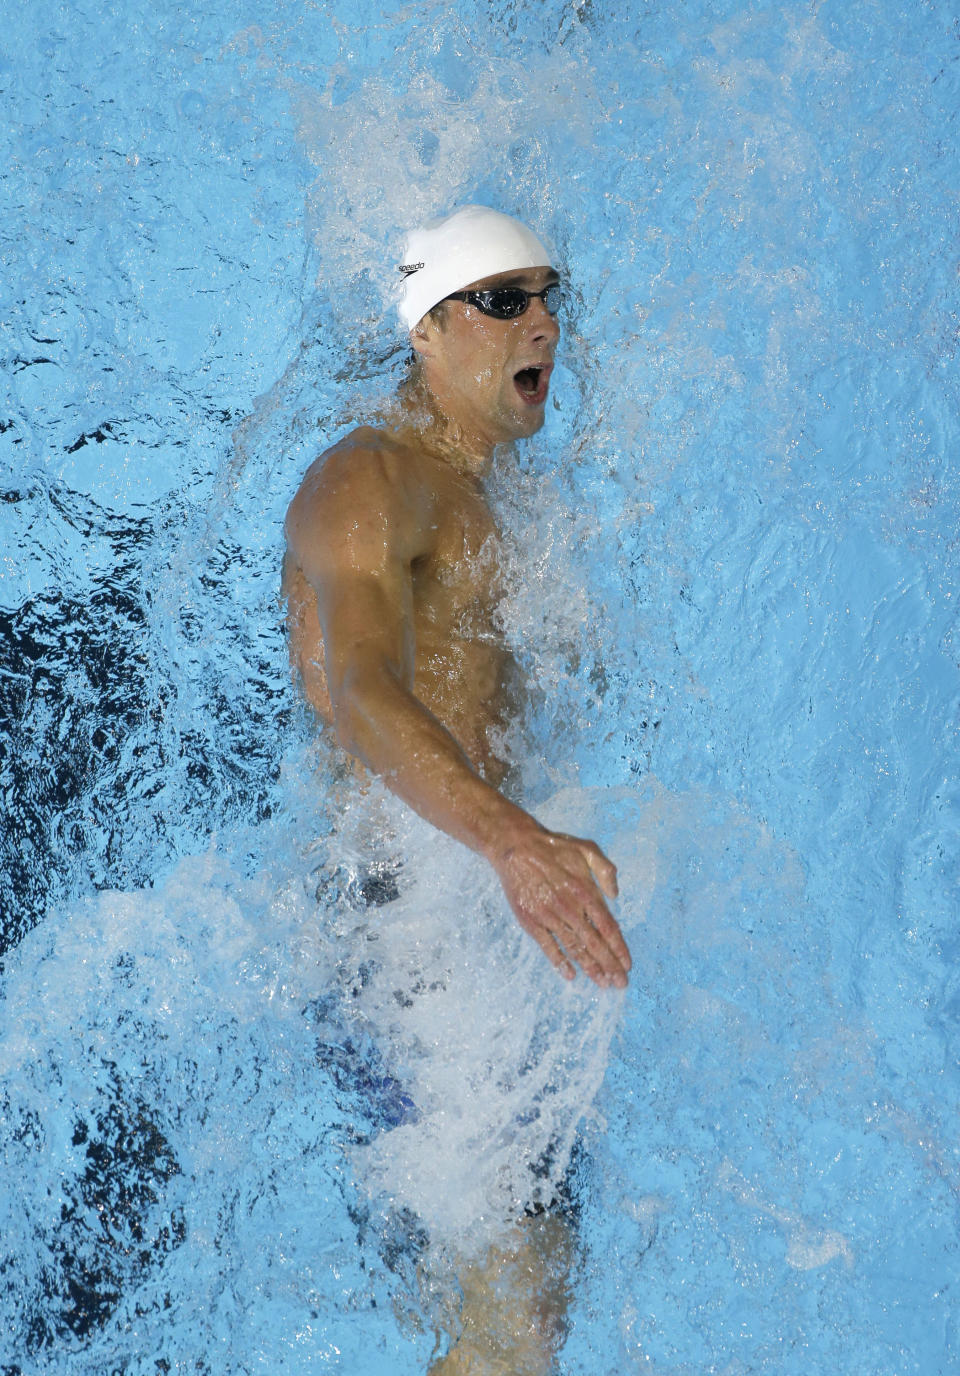 Michael Phelps swims in the men's 400-meter individual medley final at the U.S. Olympic swimming trials, Monday, June 25, 2012, in Omaha, Neb. (AP Photo/Mark Humphrey)